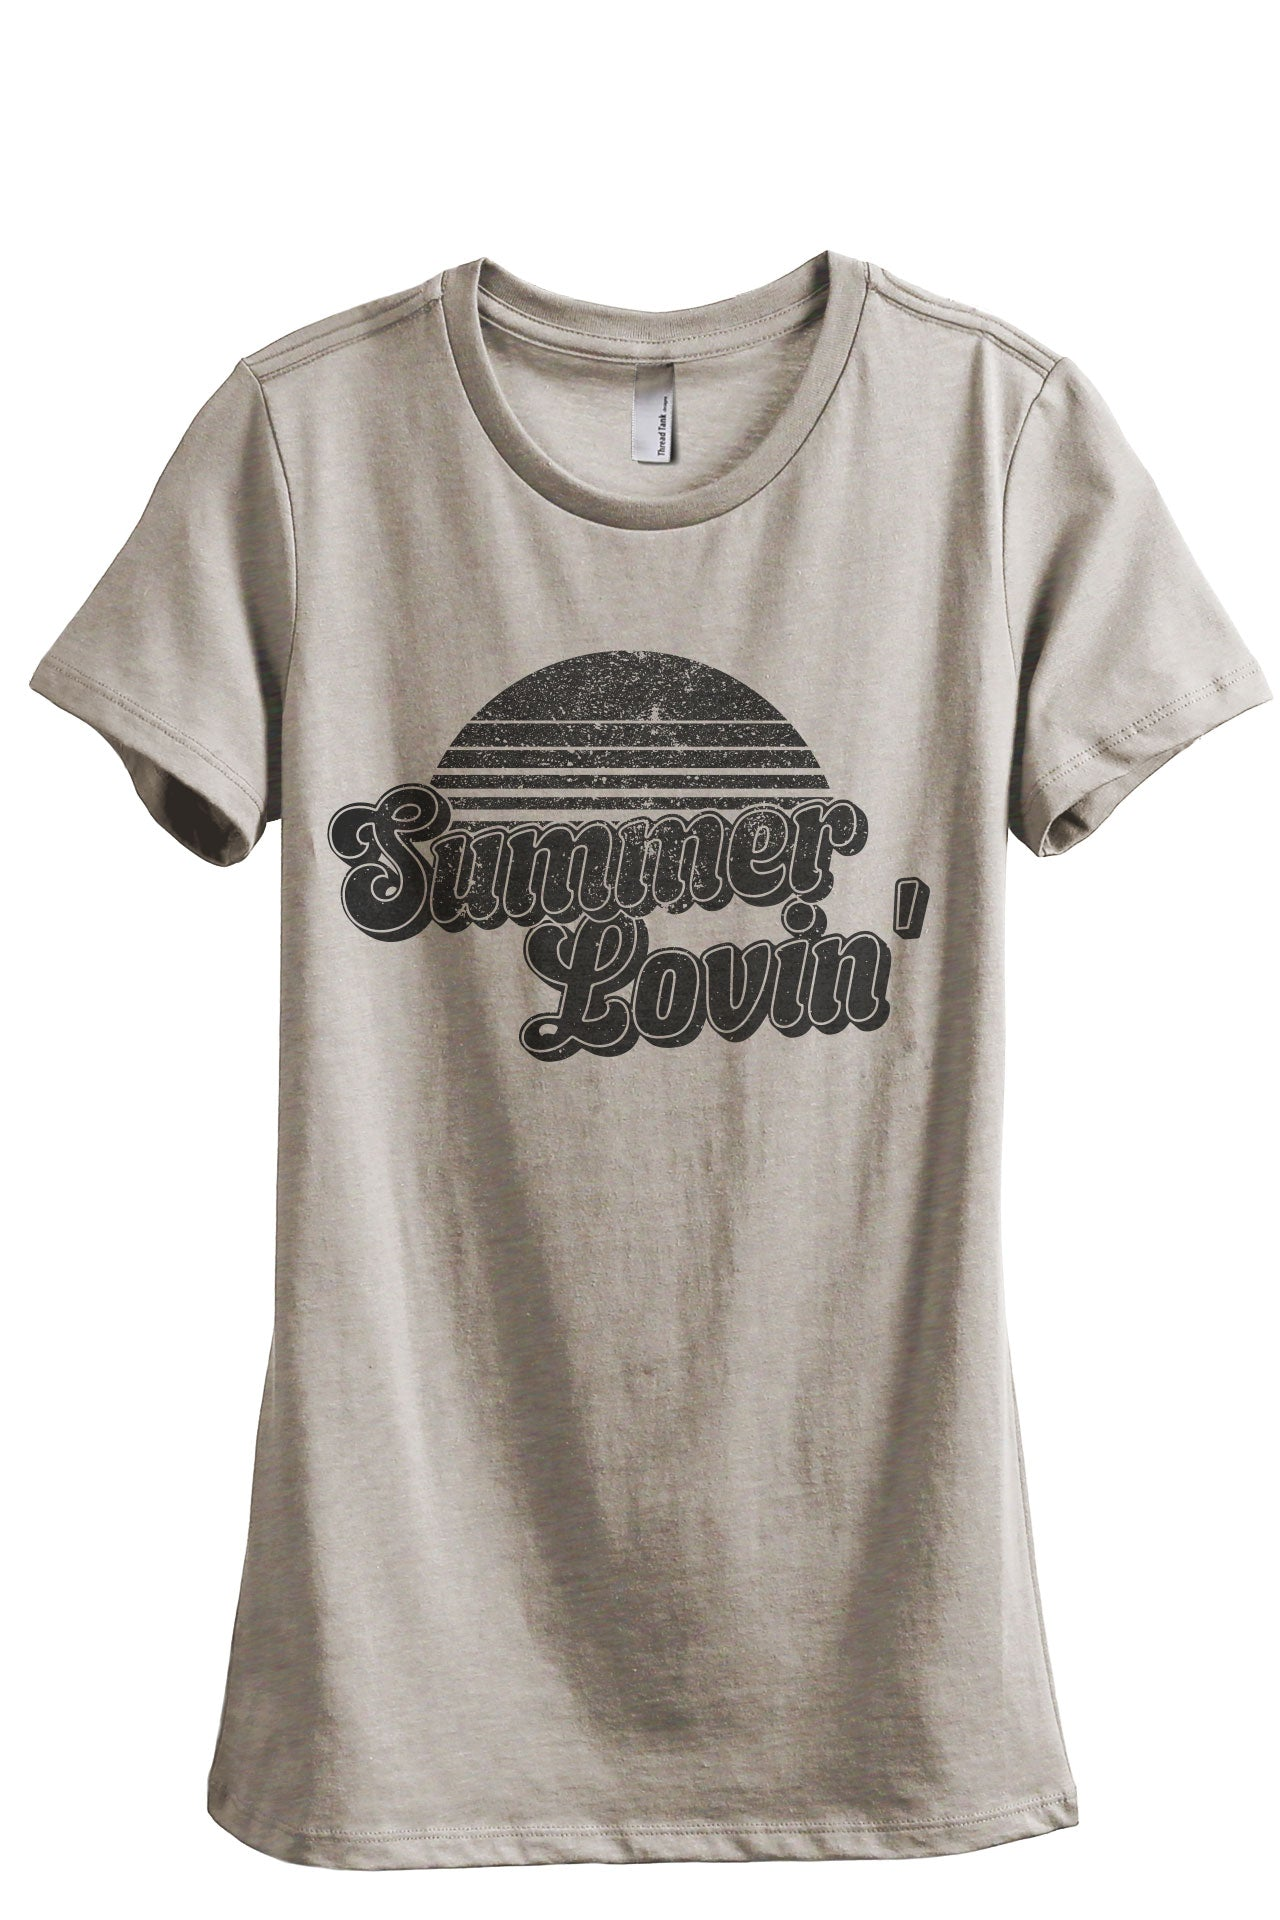 Summer Lovin' Women's Relaxed Crewneck T-Shirt Top Tee Charcoal Grey